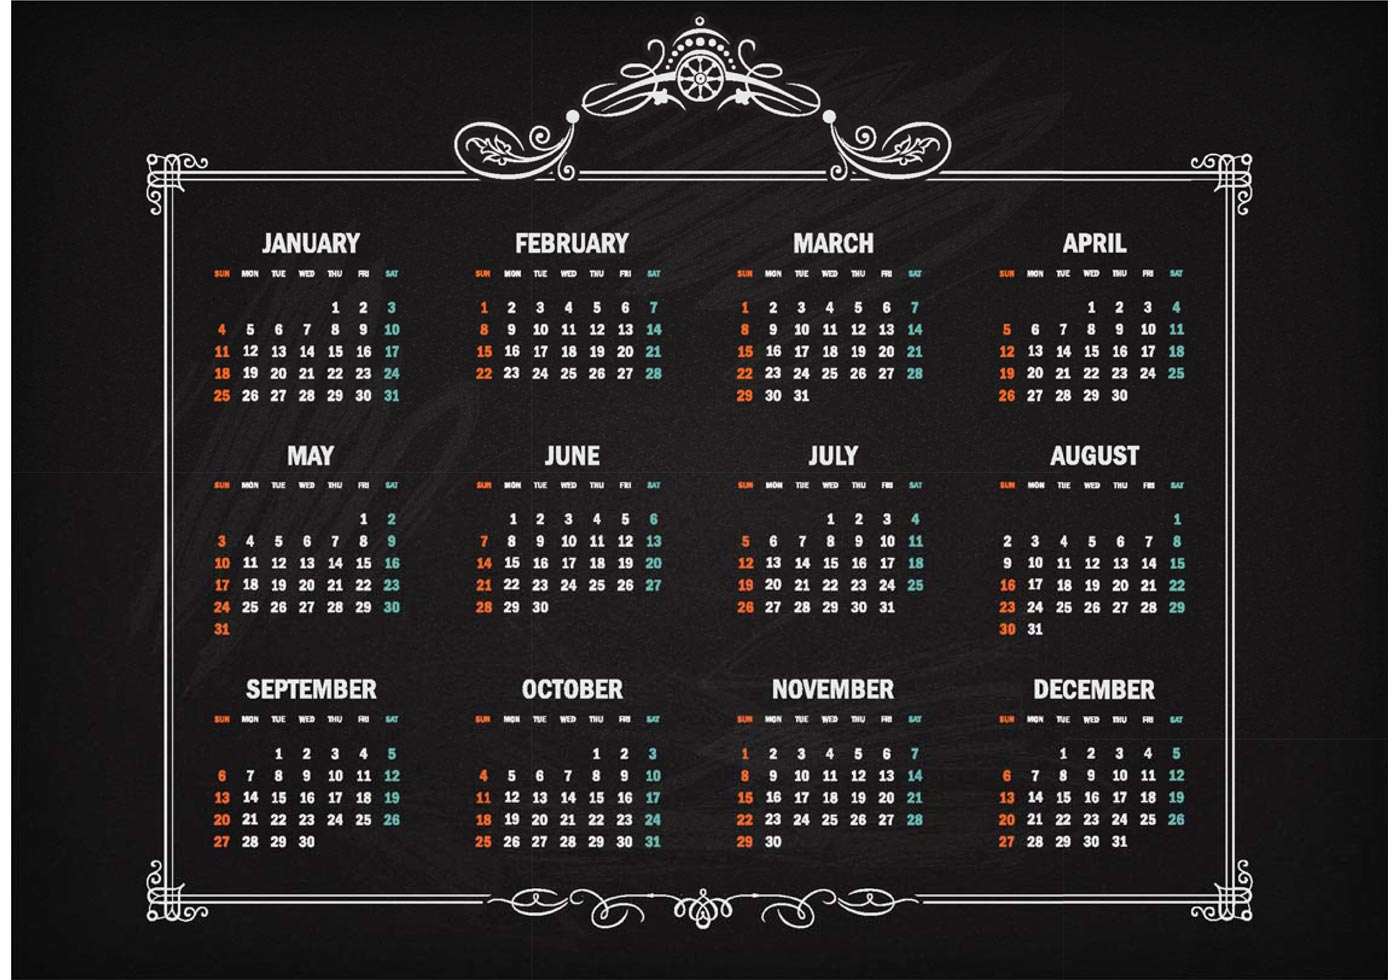 Free Vector Retro Calendar 2015 On Blackboard Download Free Vector Art Stock Graphics Amp Images